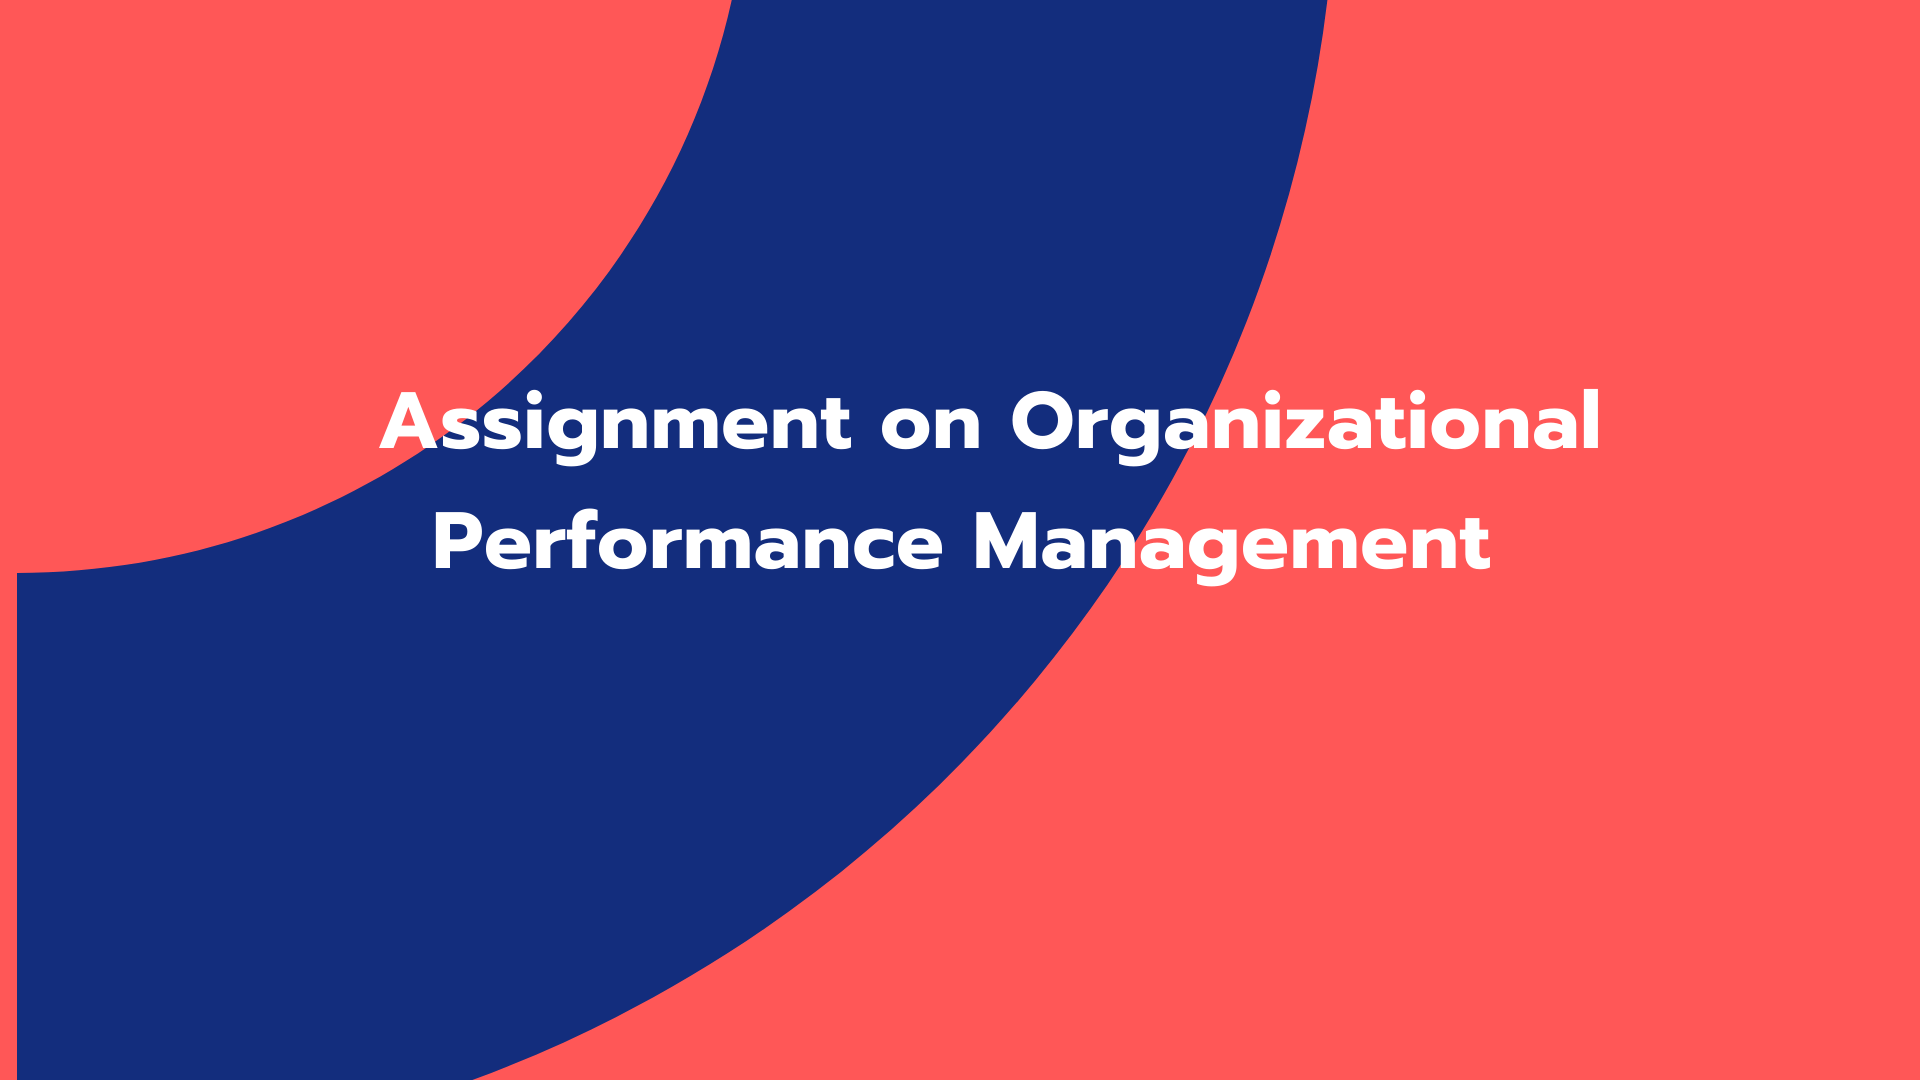 Assignment on Organizational Performance Management